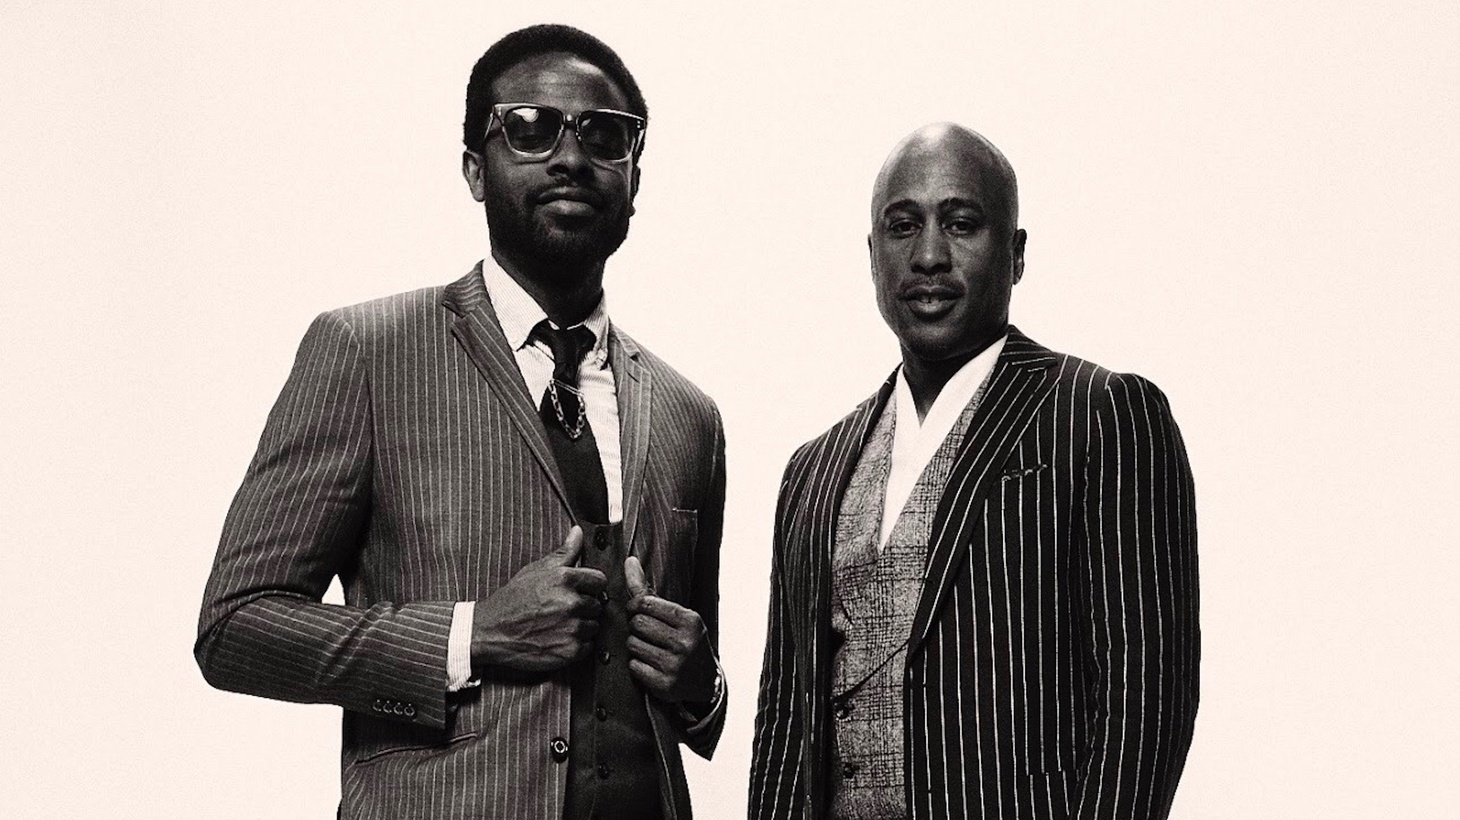 """Adrian Young and A Tribe Called Quest's Ali Shaheed Muhammad make beautiful music together alongside their ensemble The Midnight Hour. Orchestral and jazzy, you can feel the spark of love ignitedvia Loren Oden's stunning vocals on """"Harmony."""""""